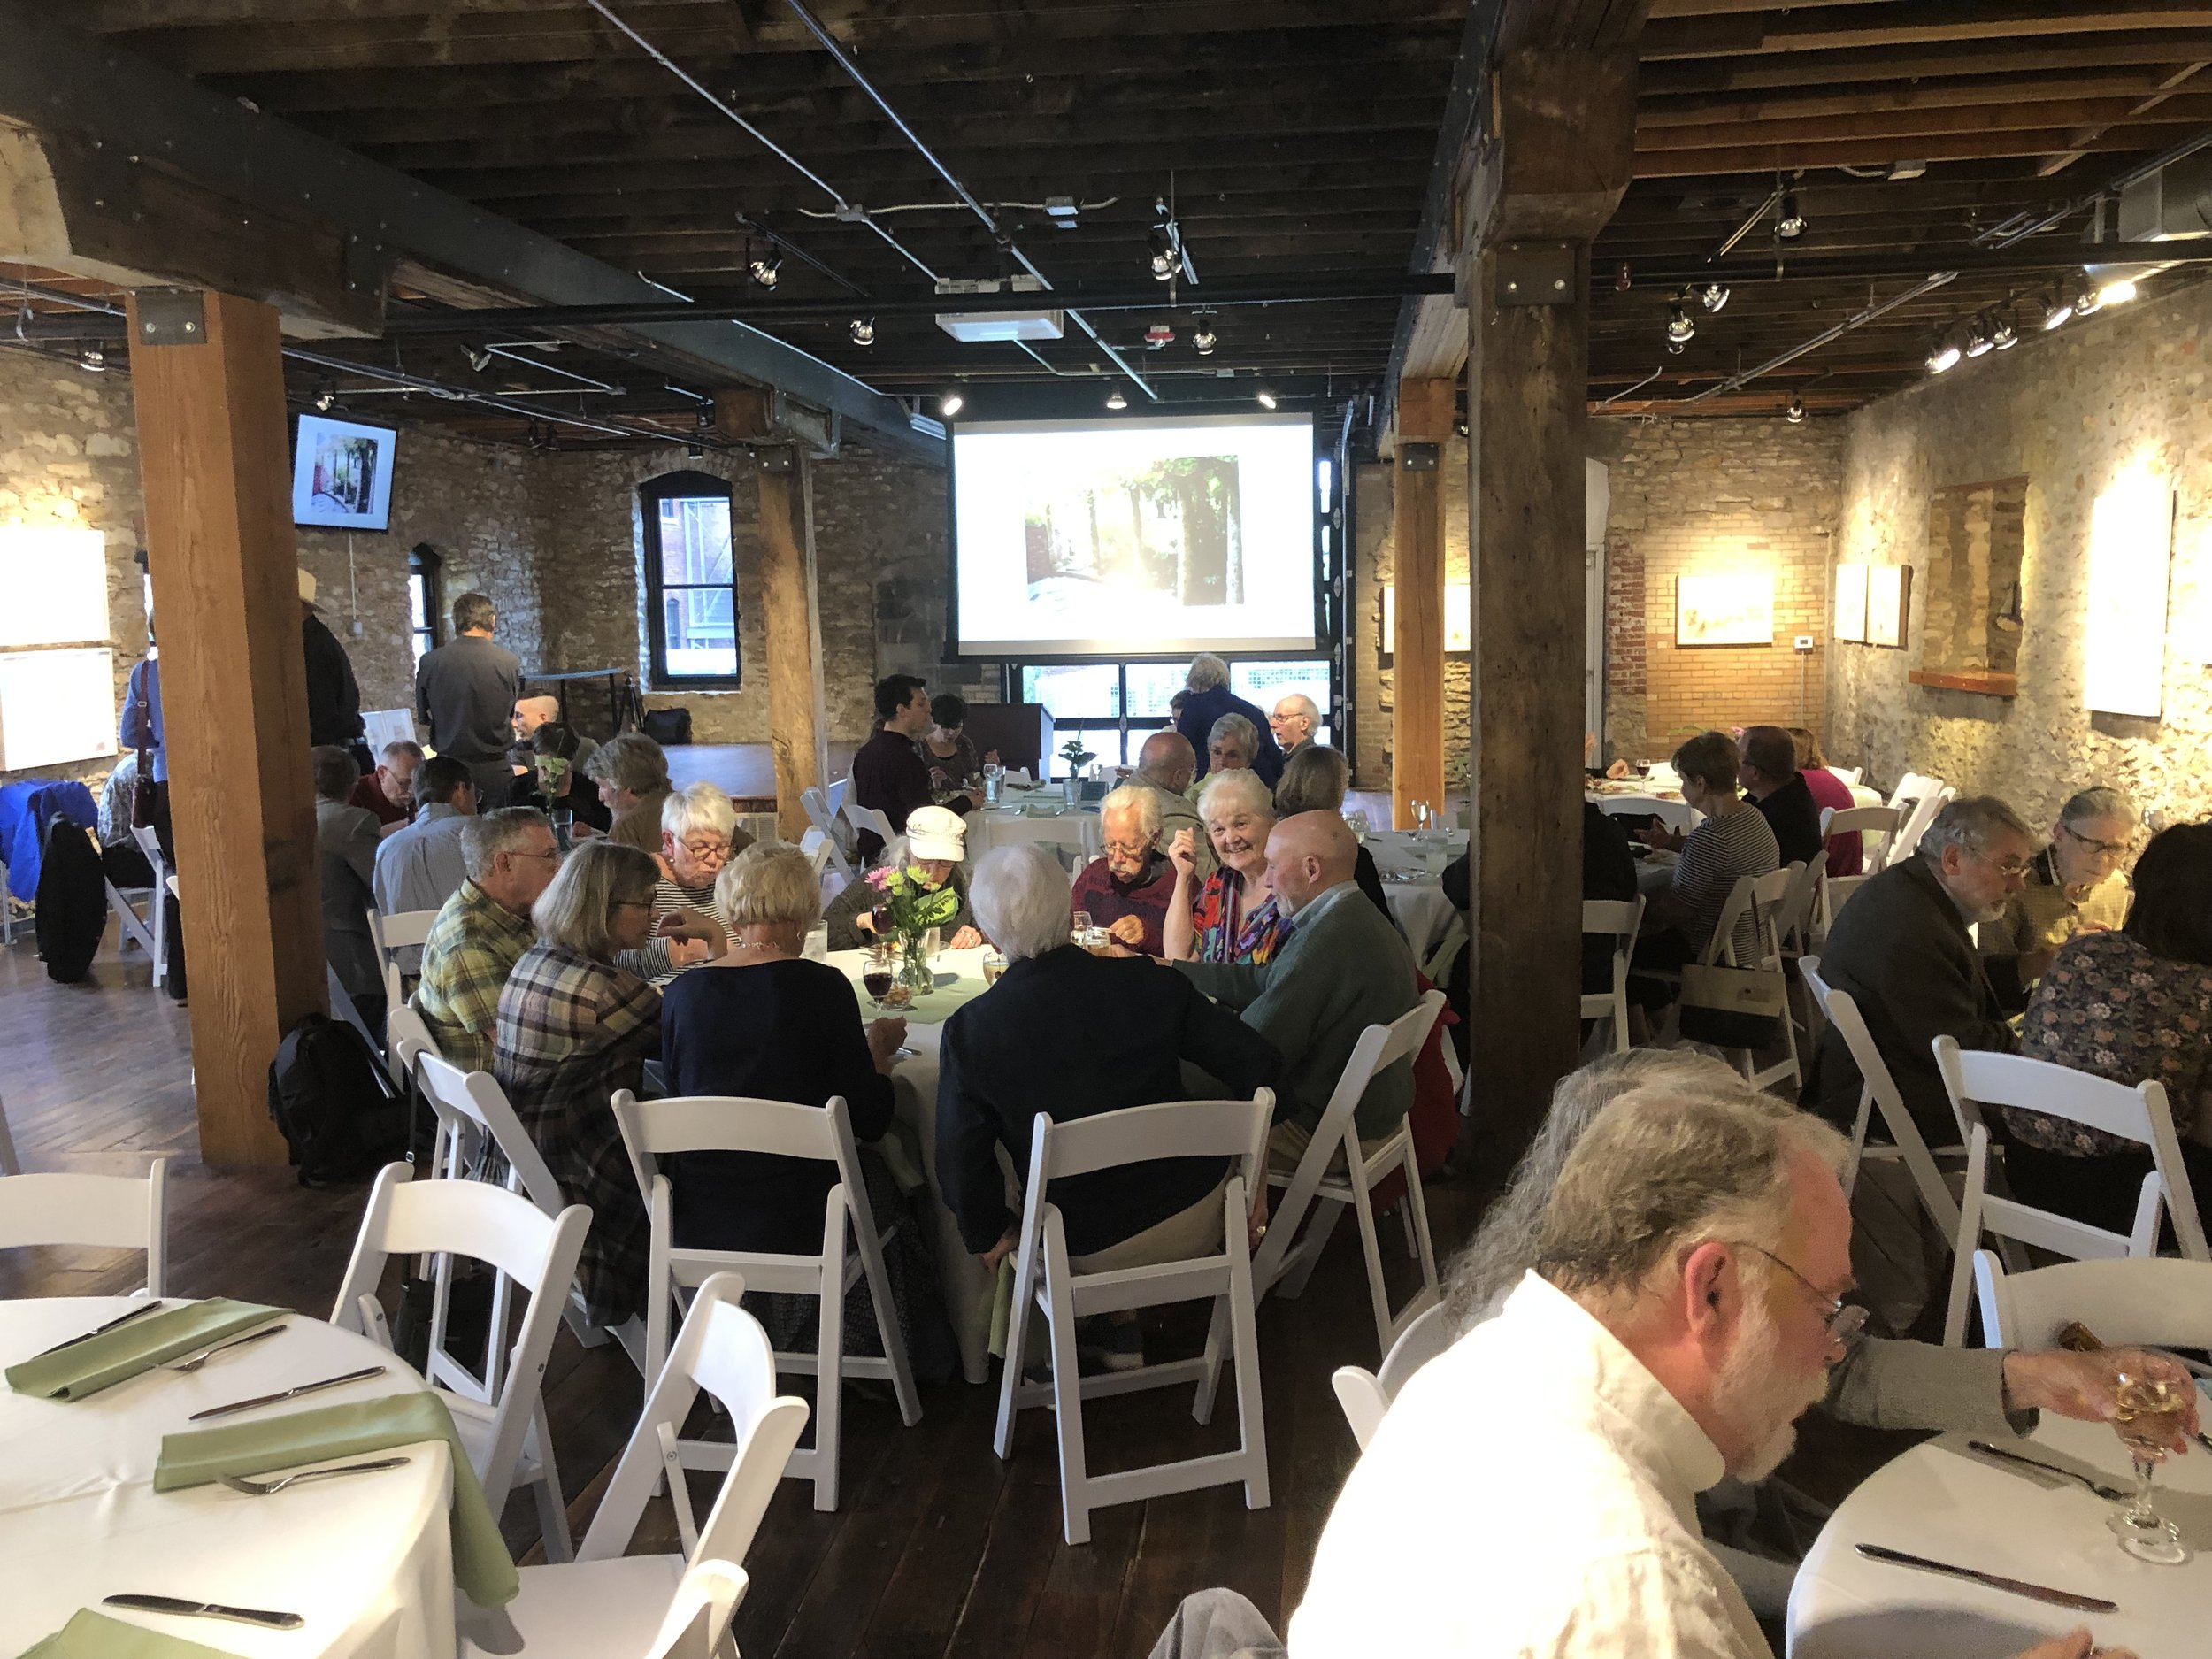 2019 Preservation Achievement Awards event, Cider gallery